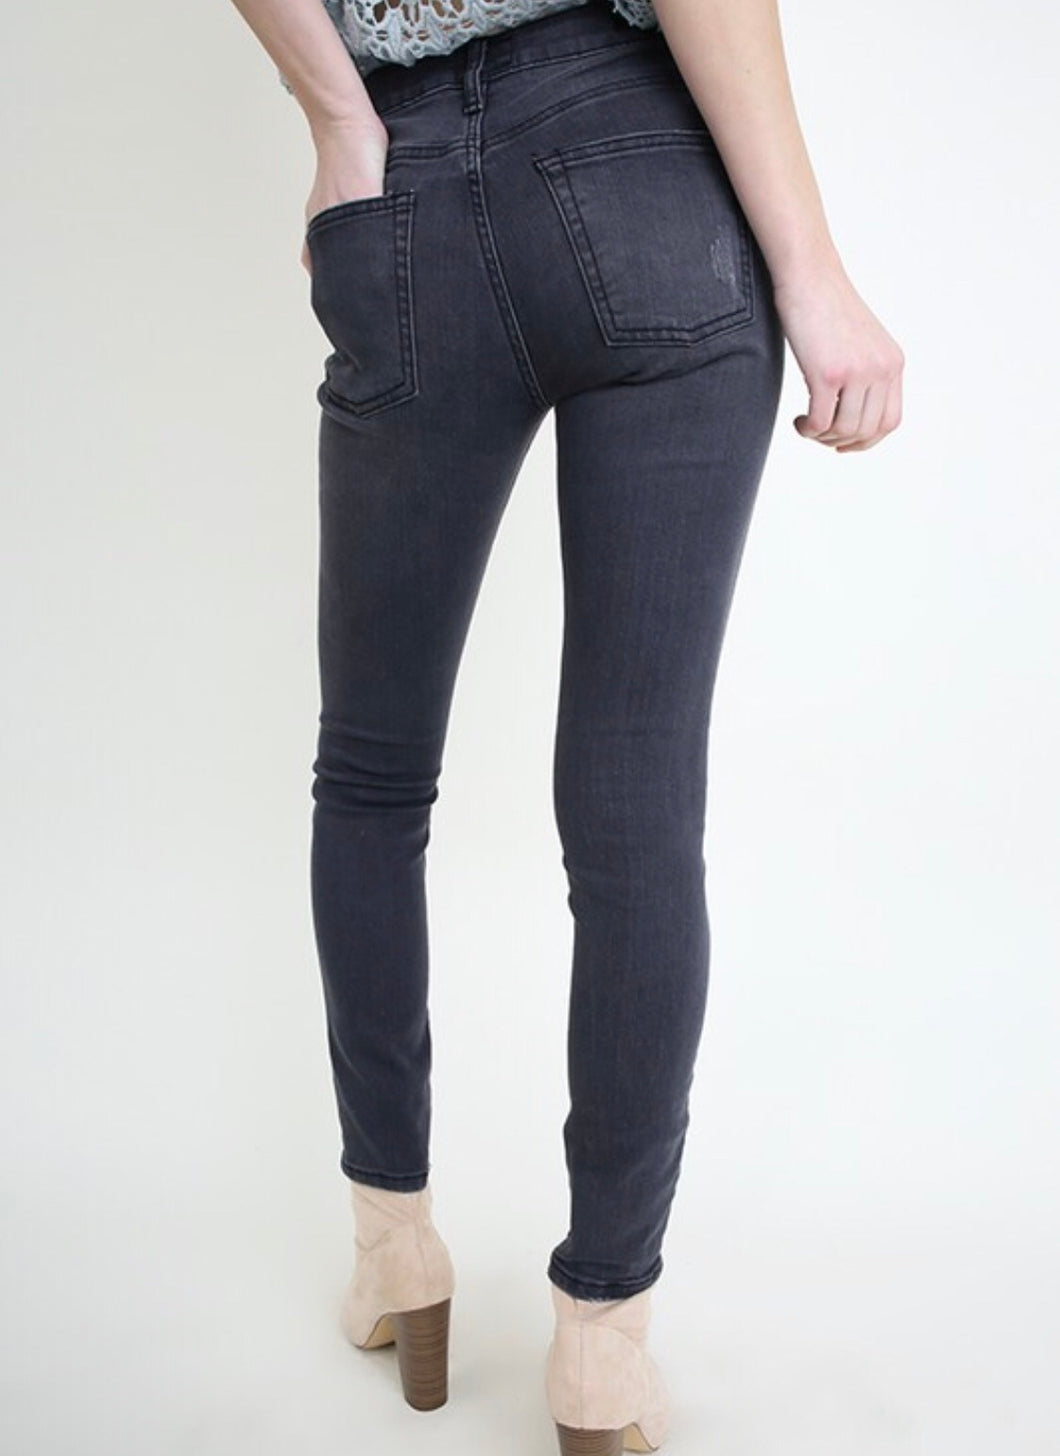 Distressed Dark Grey Jeans